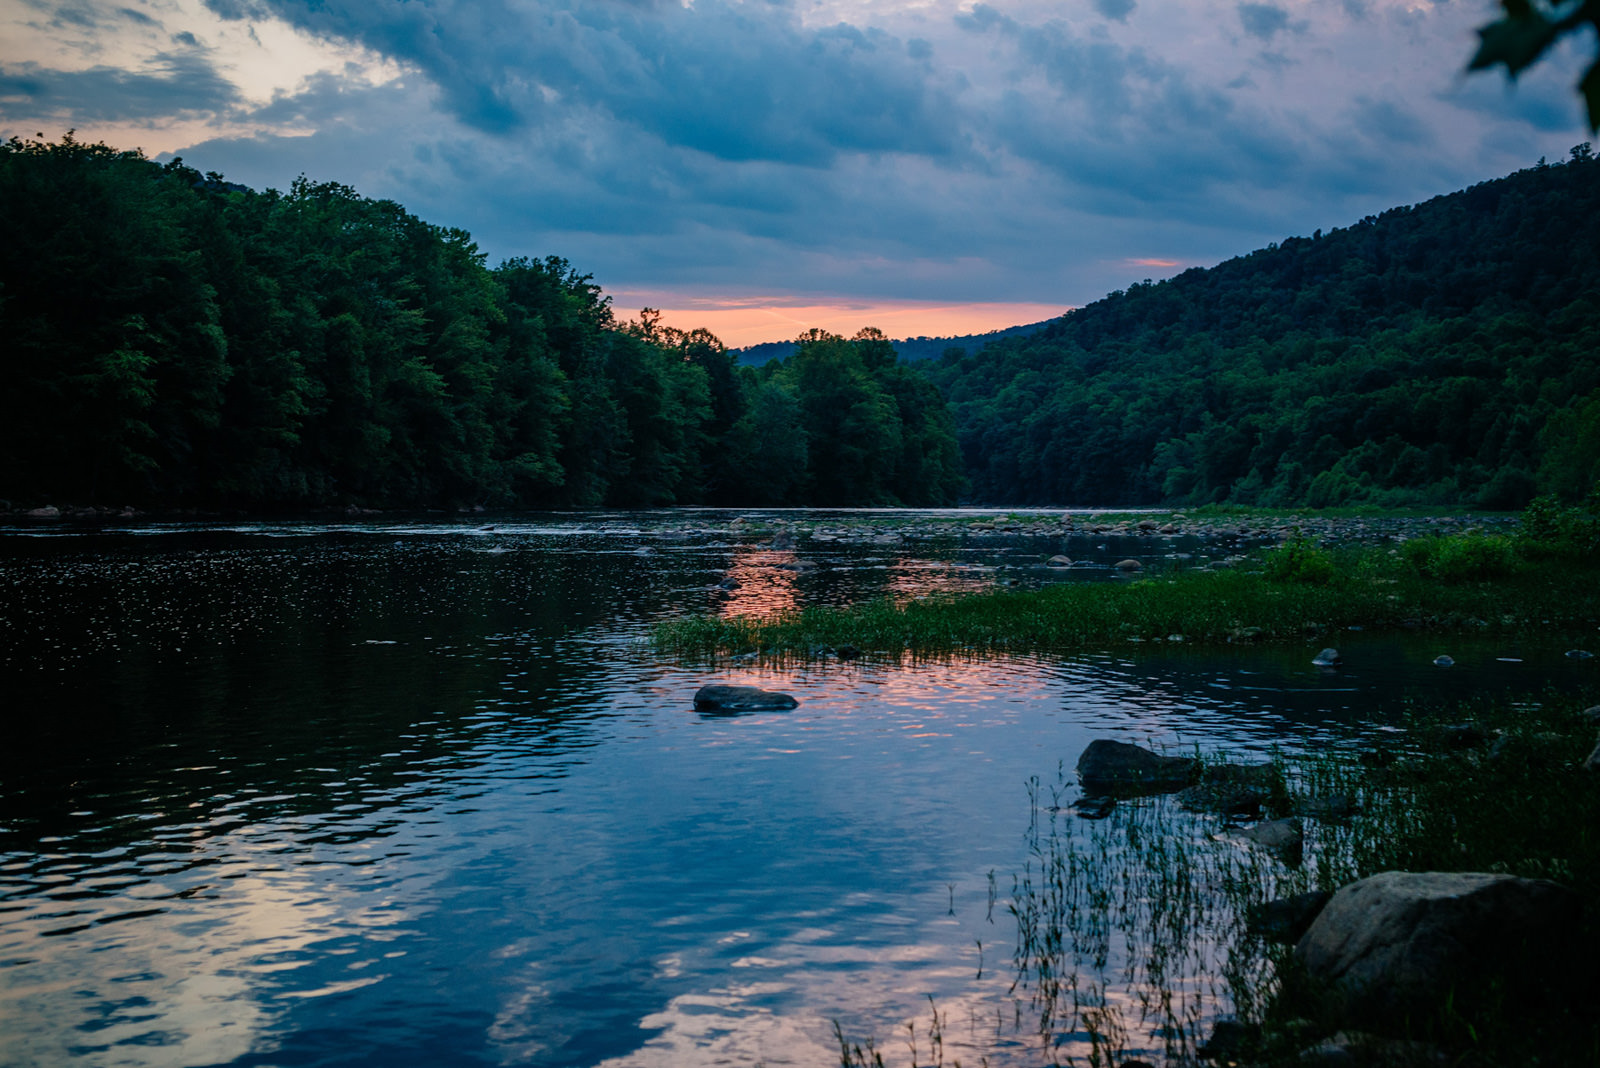 sunset cheat river west virginia